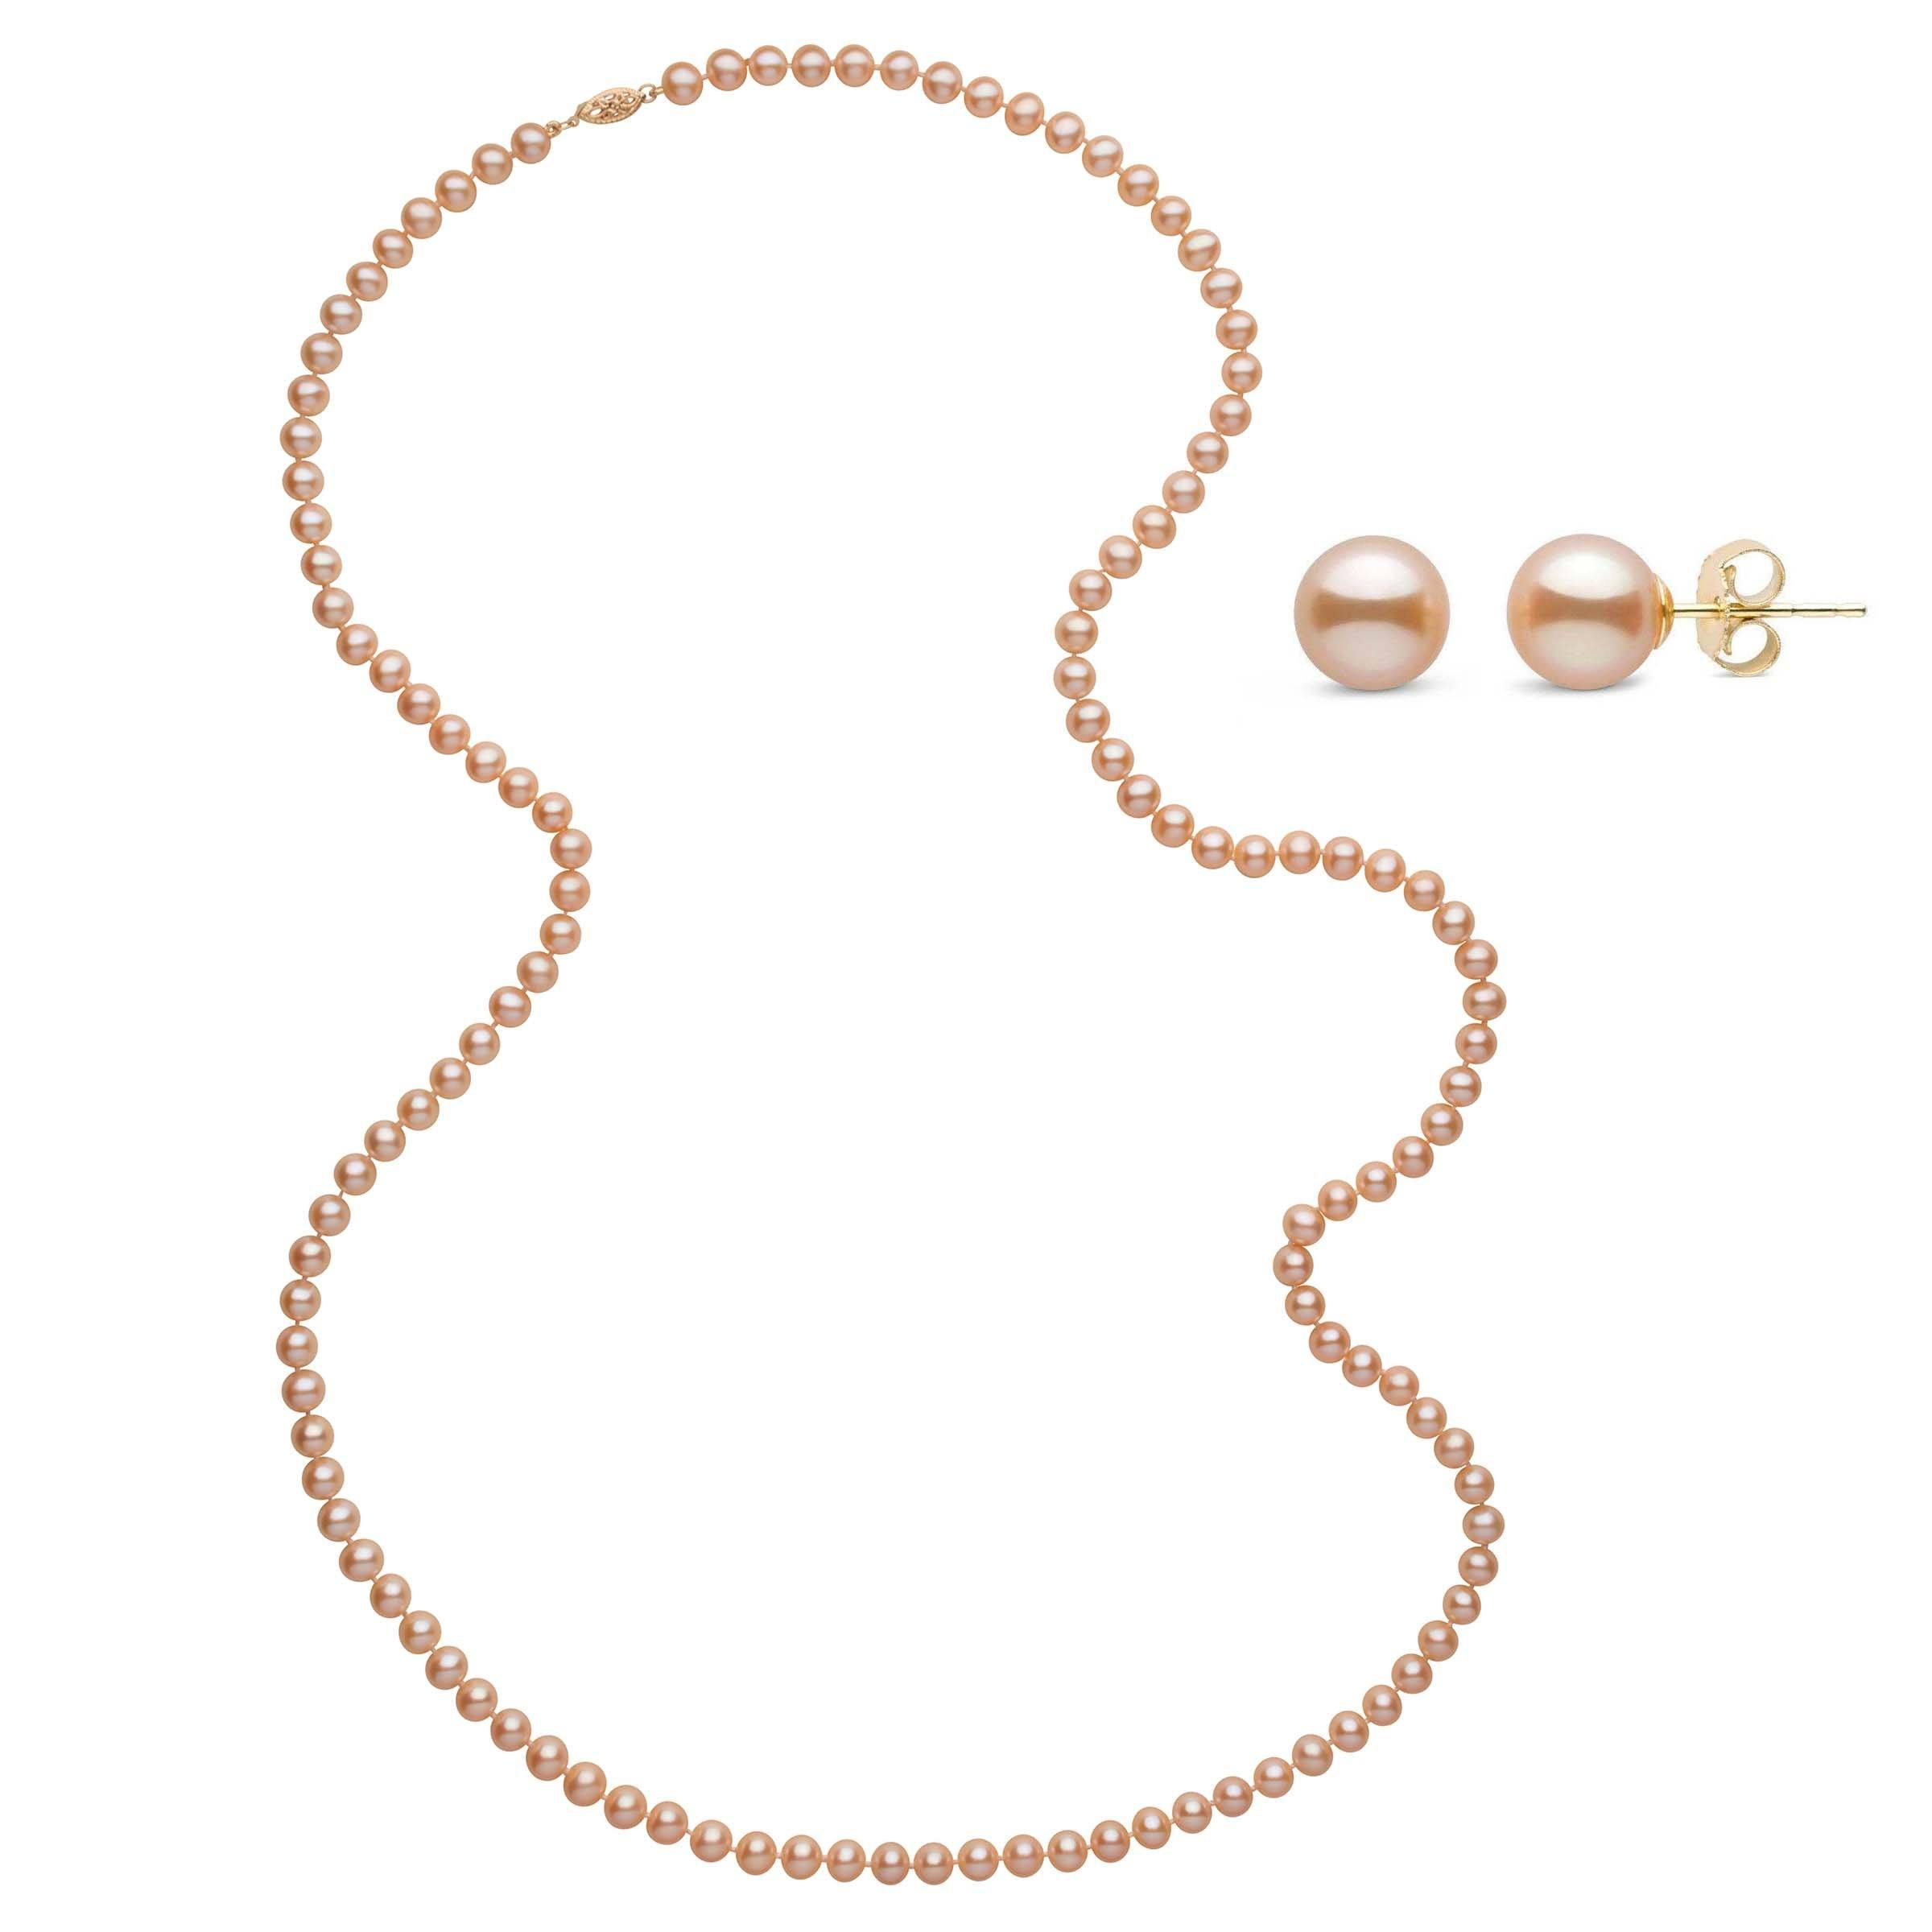 35 Inch 2 Piece Set of 6.5-7.0 mm AAA Pink to Peach Freshwater Pearls